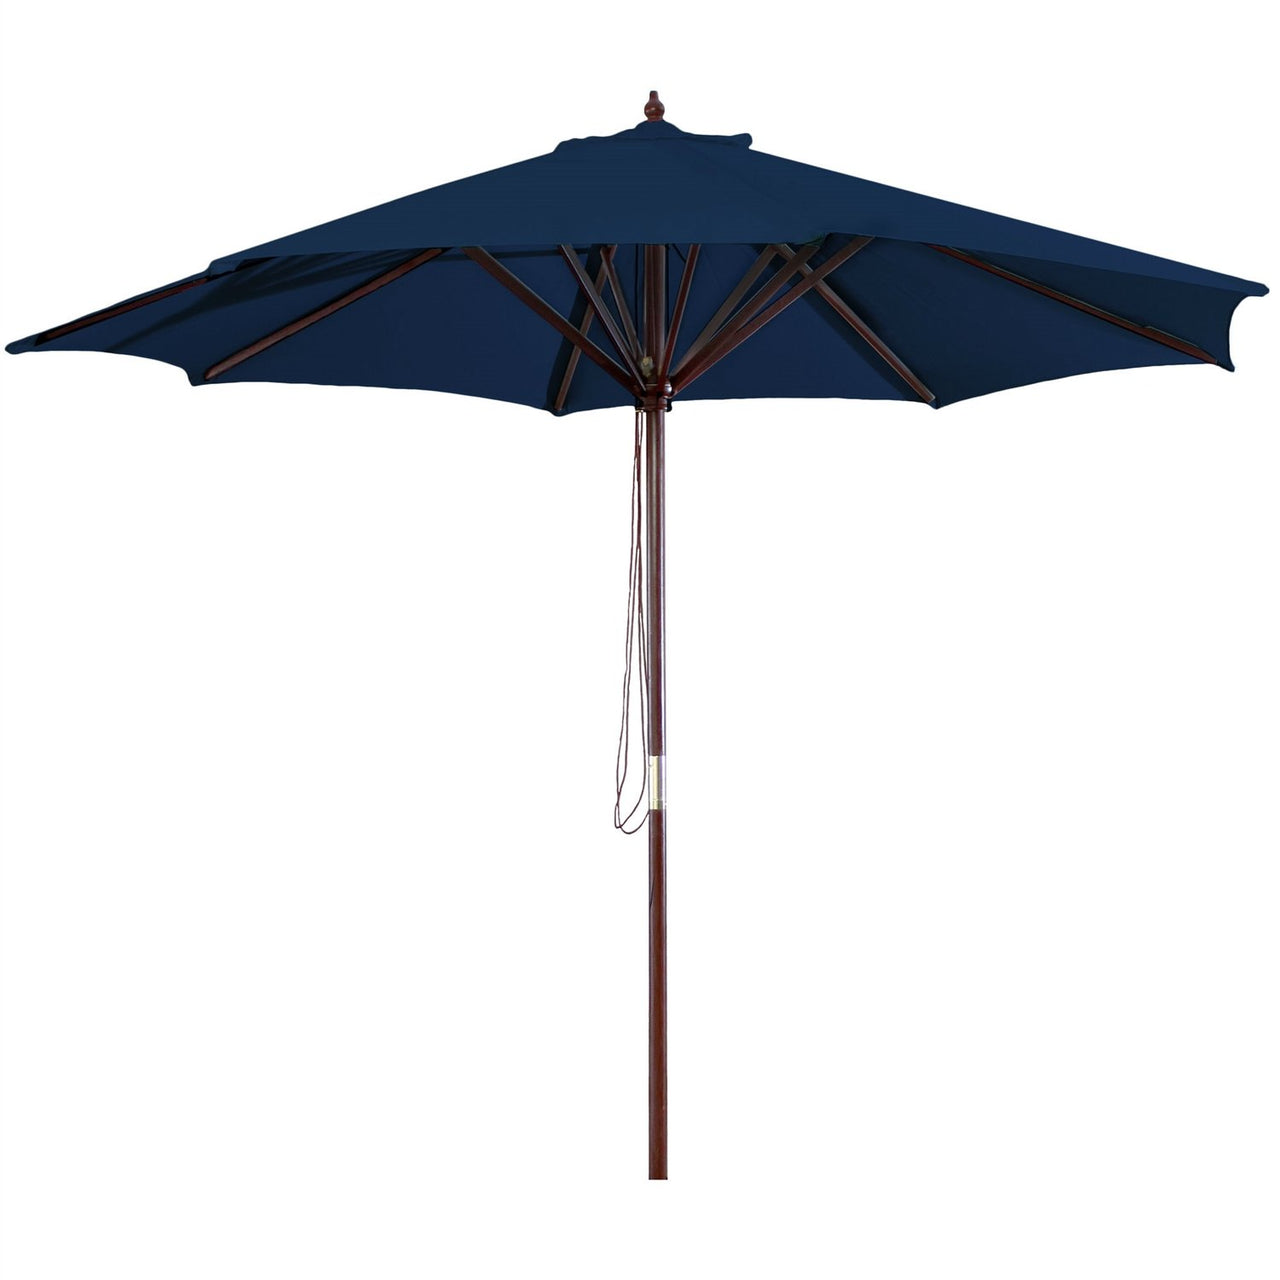 9-Foot Wood Frame Patio Umbrella with Pulley & Royal Blue Canopy